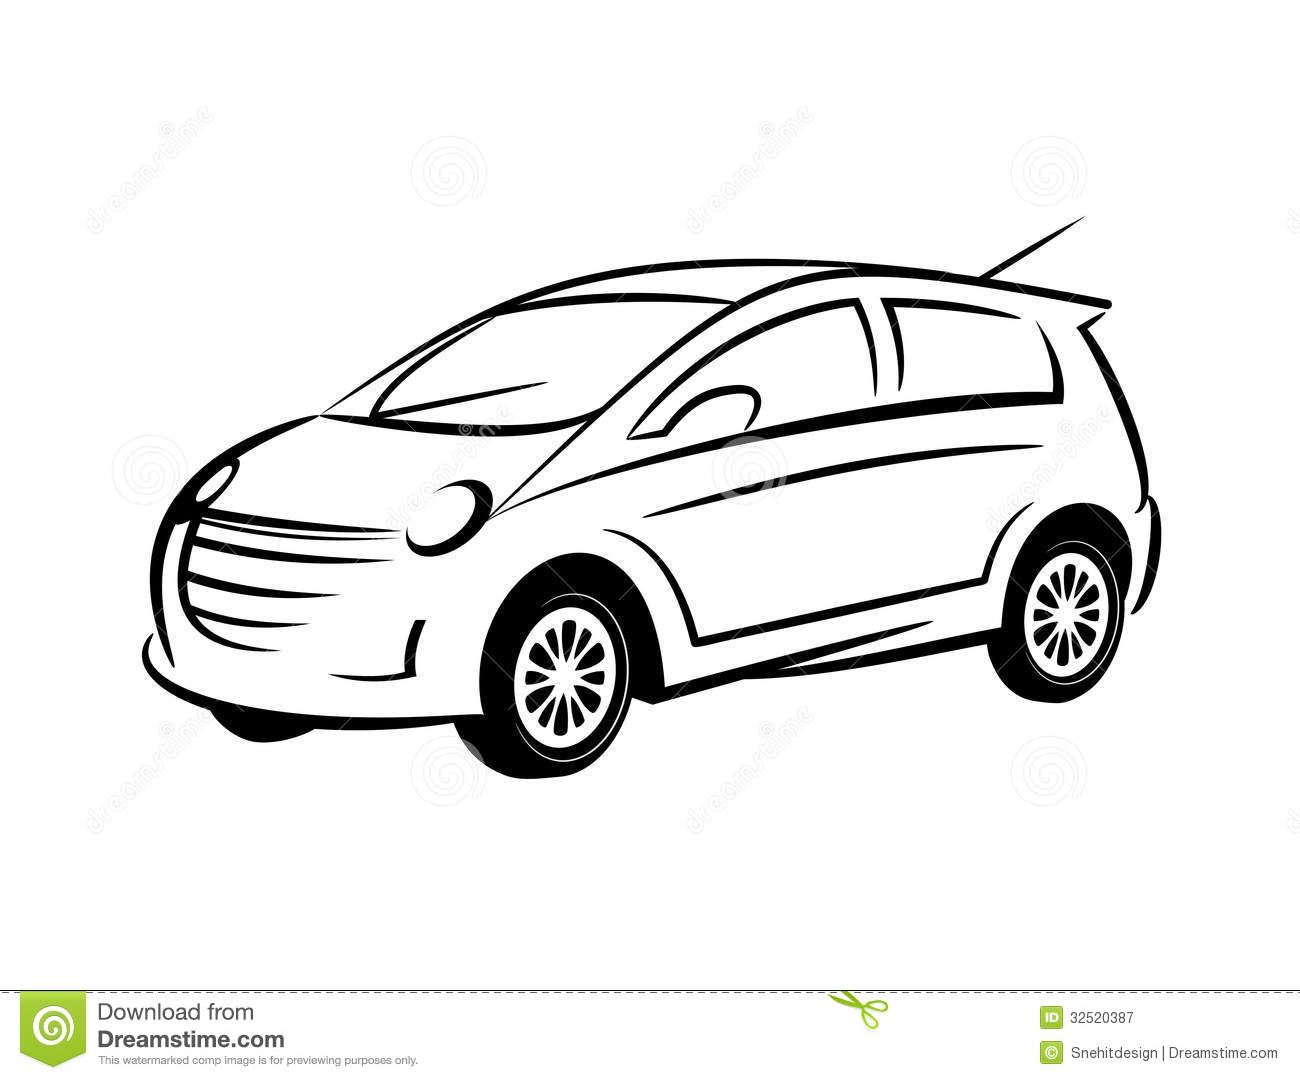 Line Art Car : Car line art royalty free stock photography image